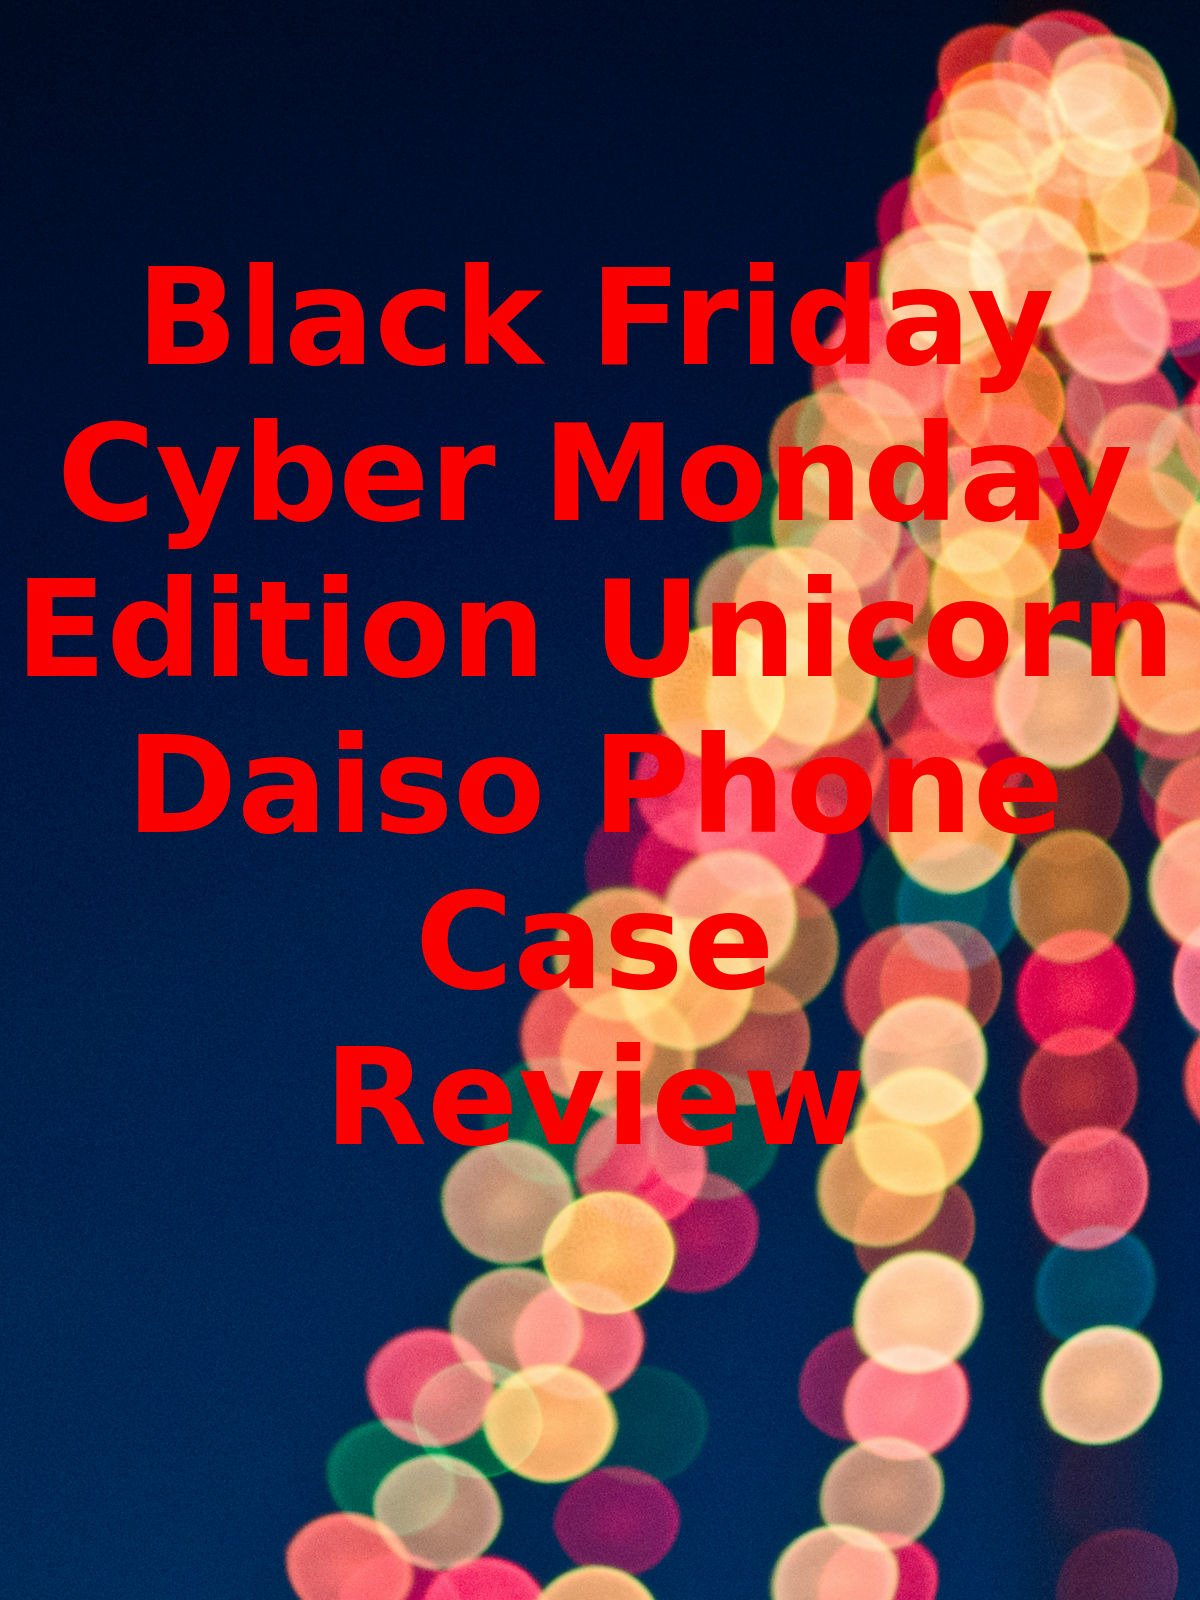 Review: Black Friday Cyber Monday Edition Unicorn Daiso Phone Case Review